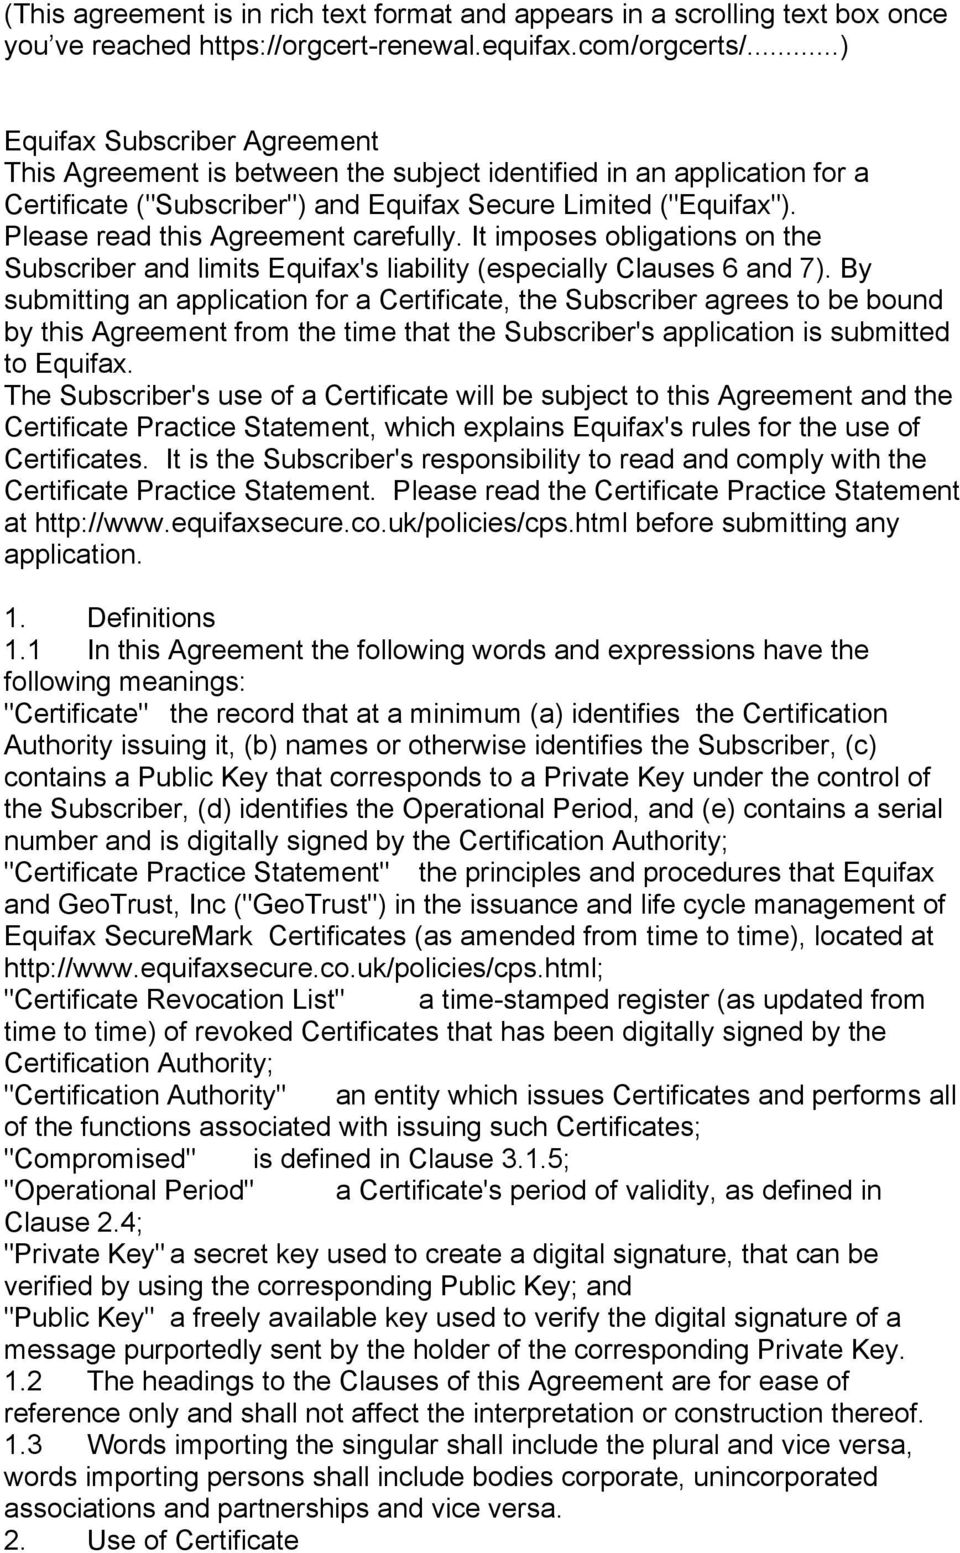 Please read this Agreement carefully. It imposes obligations on the Subscriber and limits Equifax's liability (especially Clauses 6 and 7).